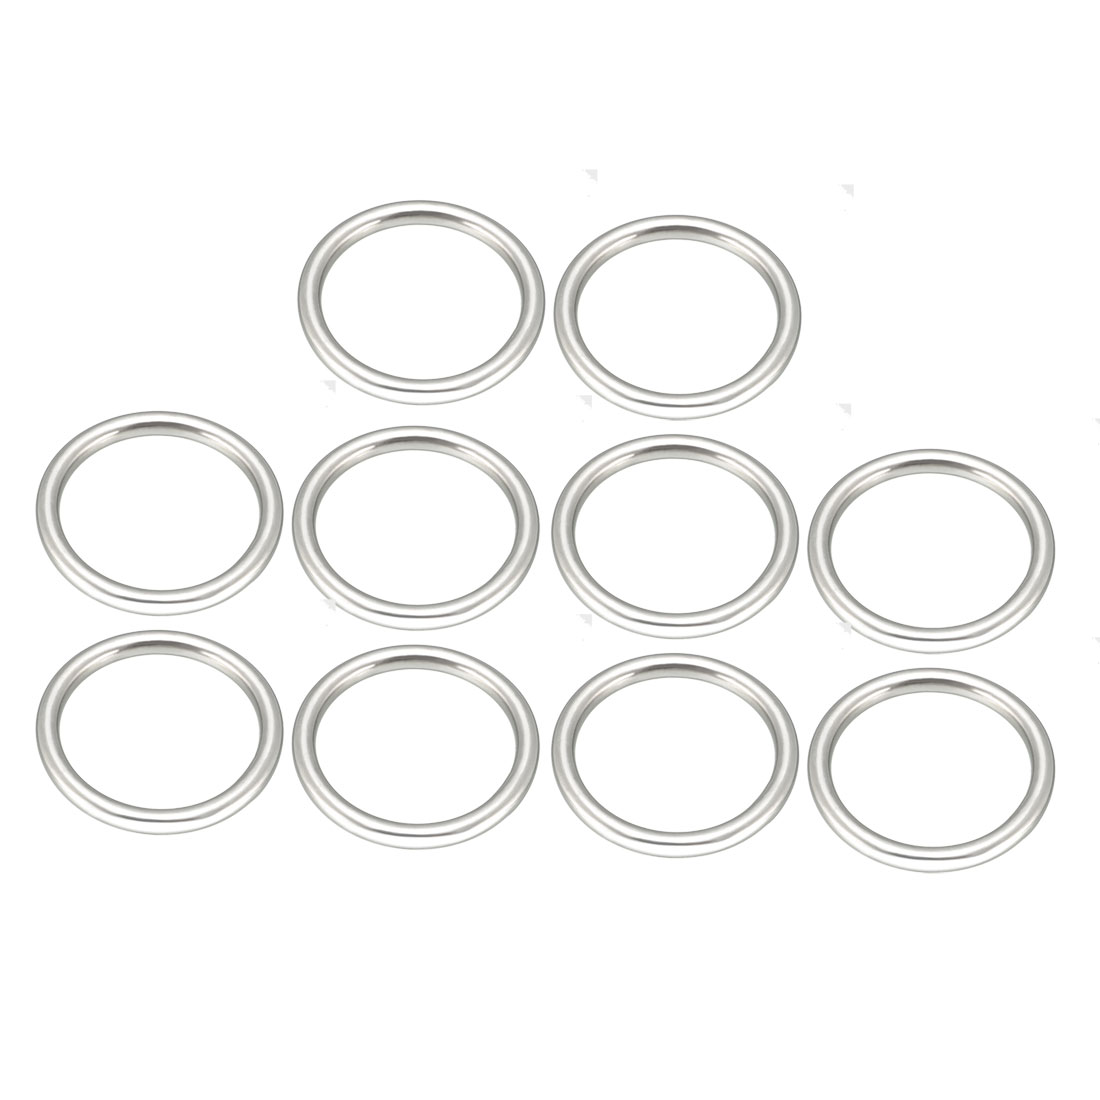 Uxcell 10 Pcs Multi-Purpose Metal O Ring Buckle Welded 38mm X 30mm X 4mm For Hardware Bags Ring Hand DIY Accessories